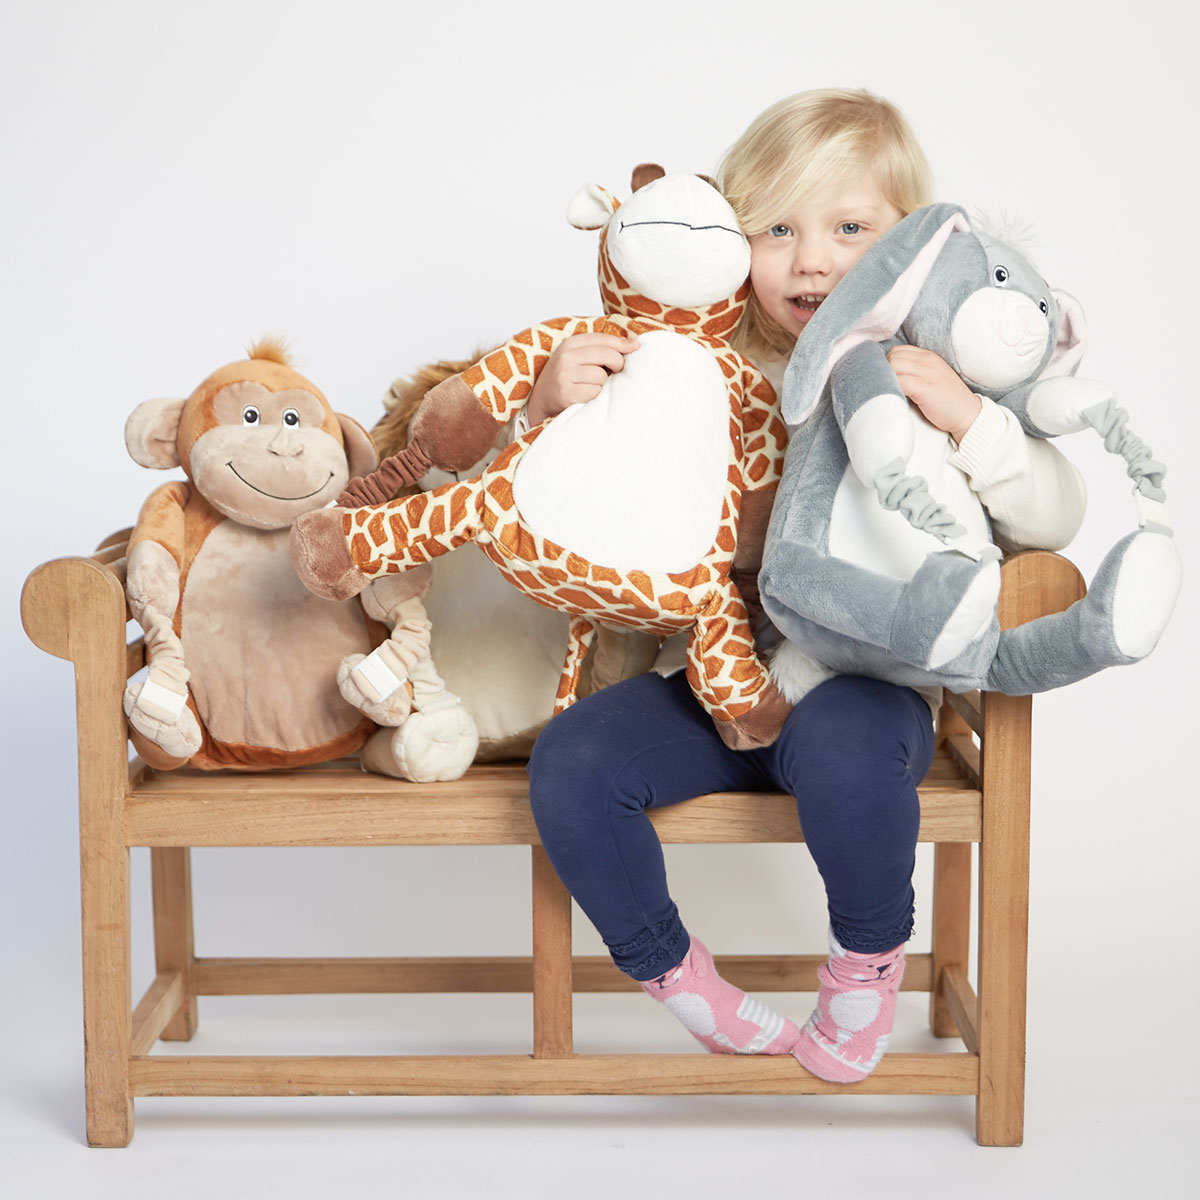 Personalised BoBo Buddies Blanket Backpack